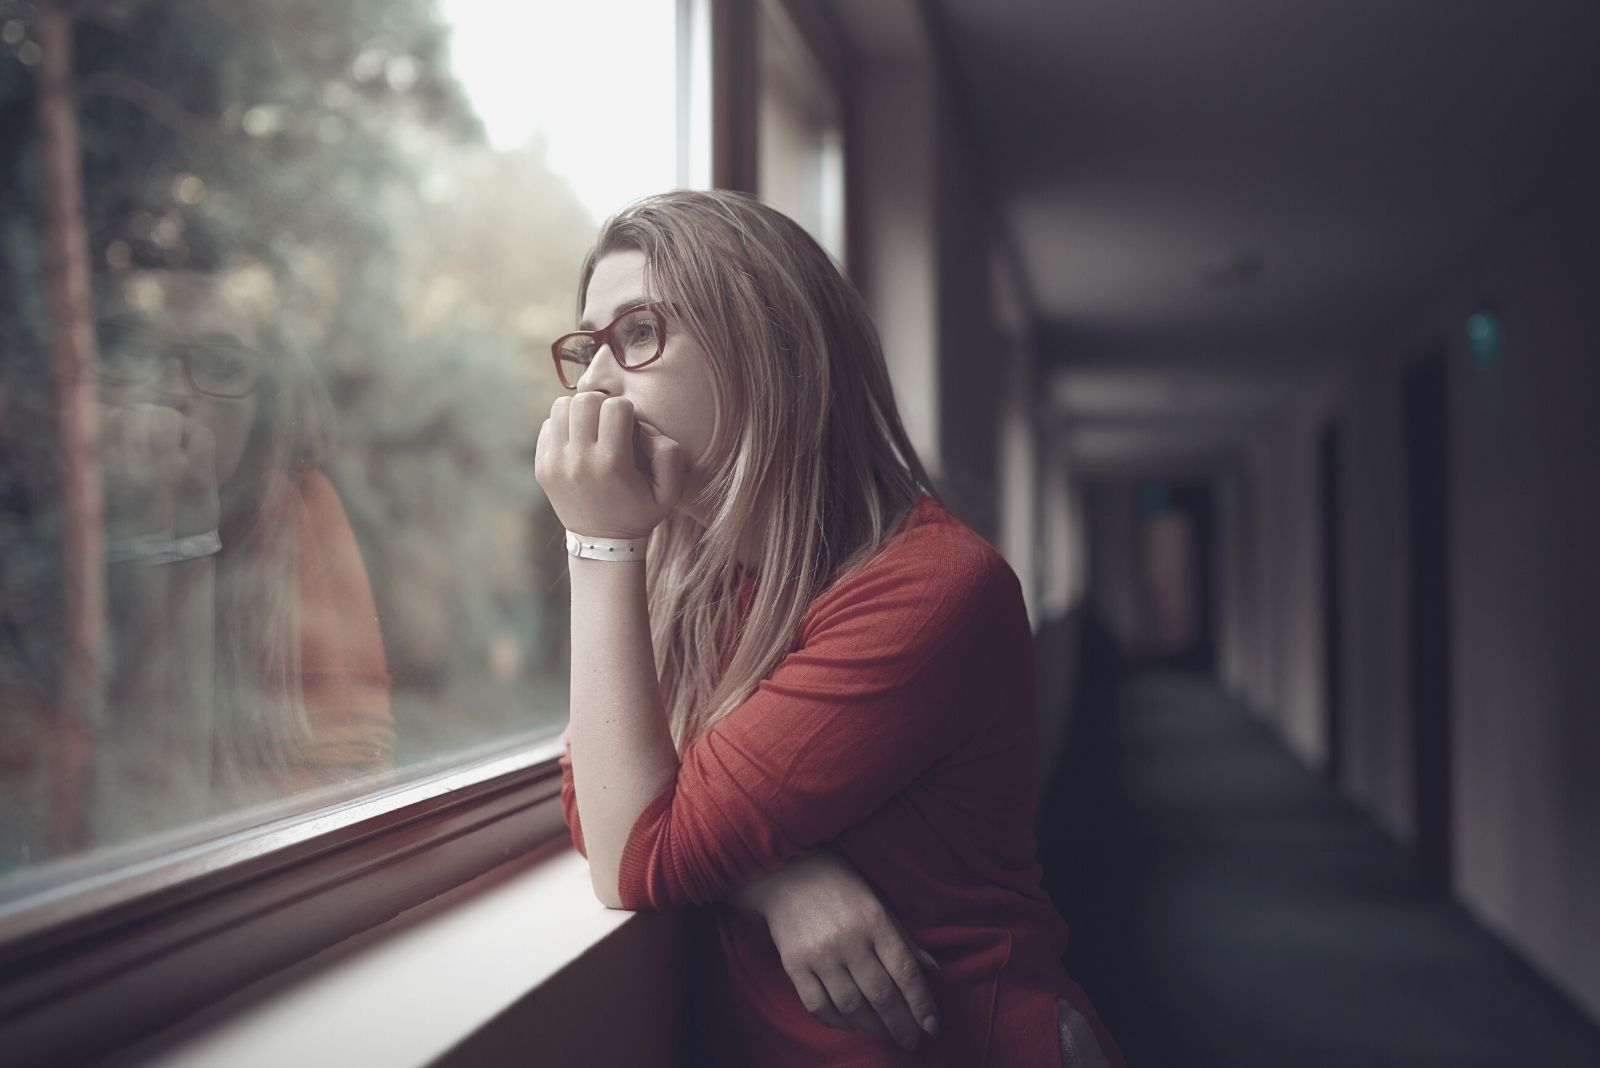 woman deeply thinking leaning on the window sill looking outside